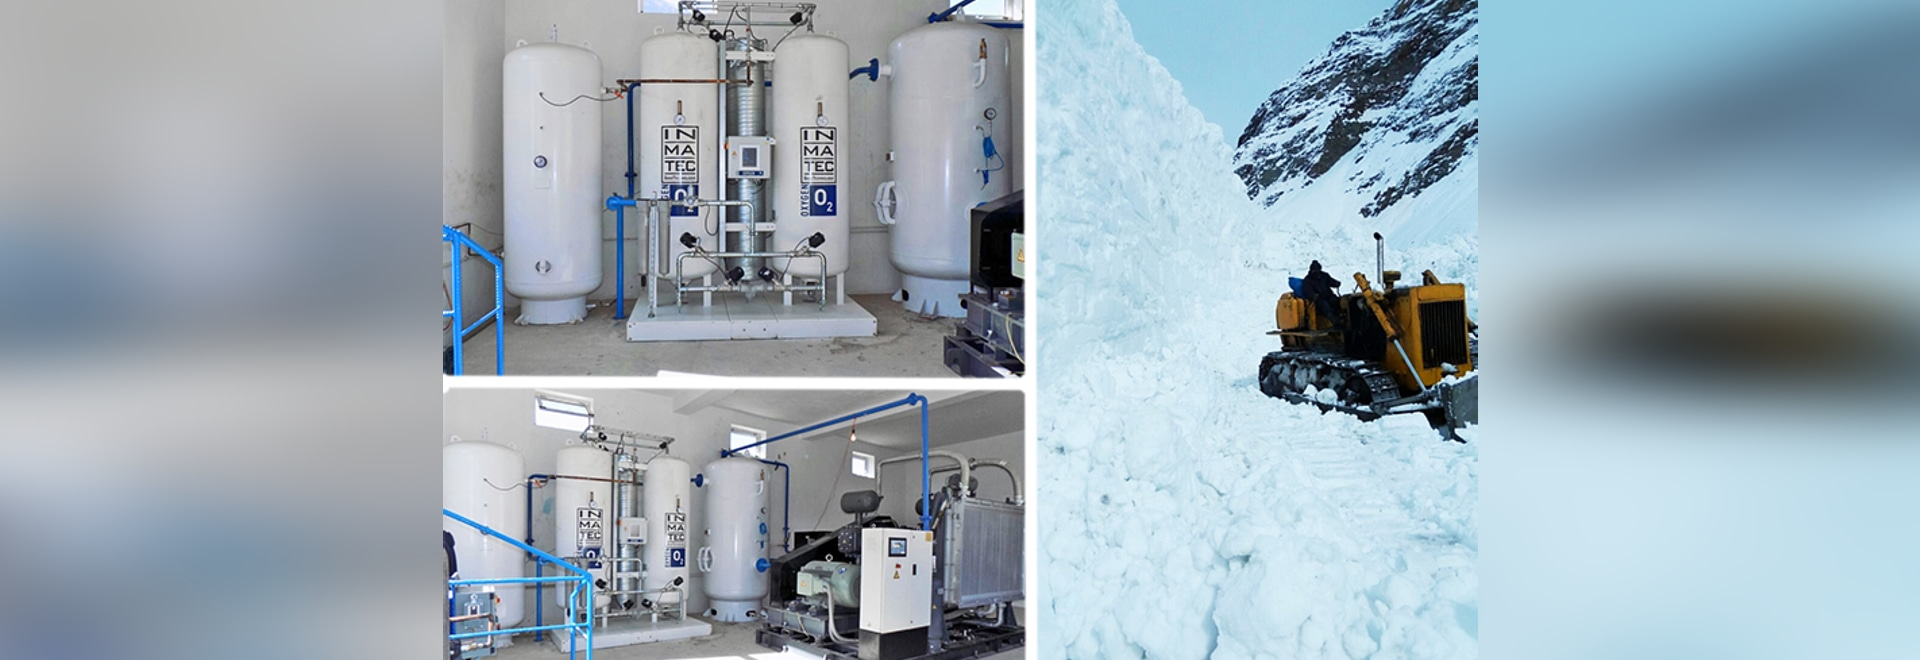 Oxygen supplies in hospitals or clinics located in inaccessible areas is a challenge.